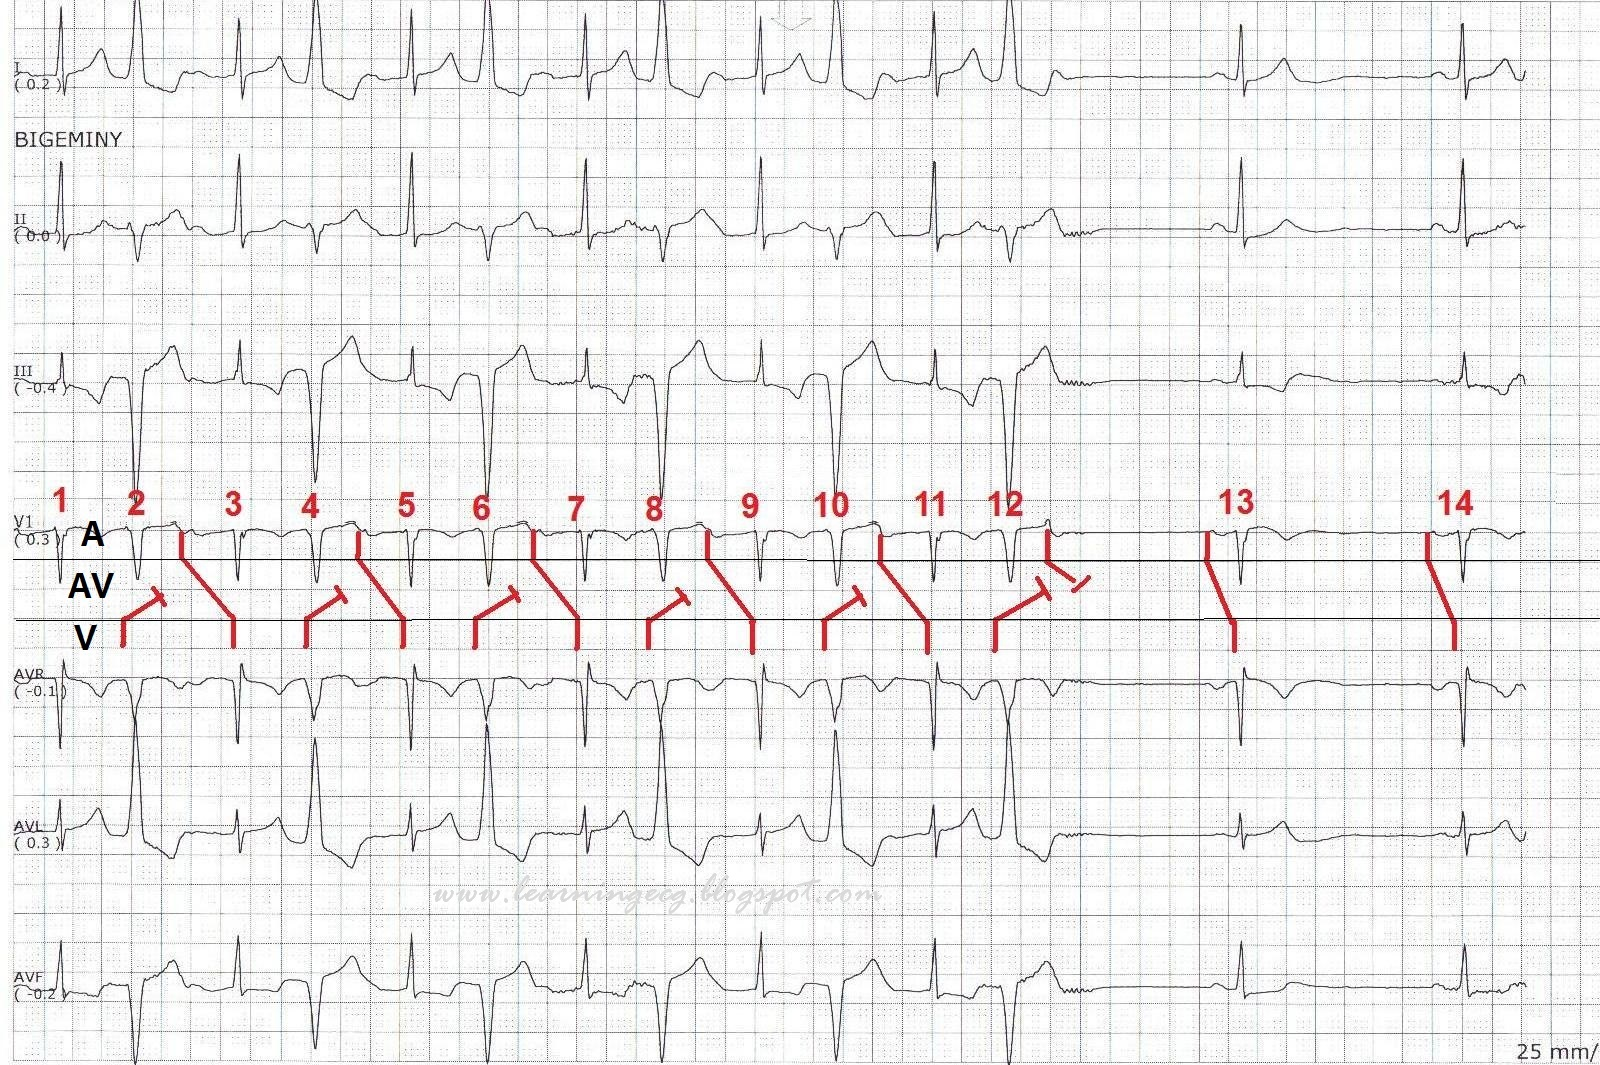 Ecg Rhythms Prolonged Pr Interval Due To Concealed